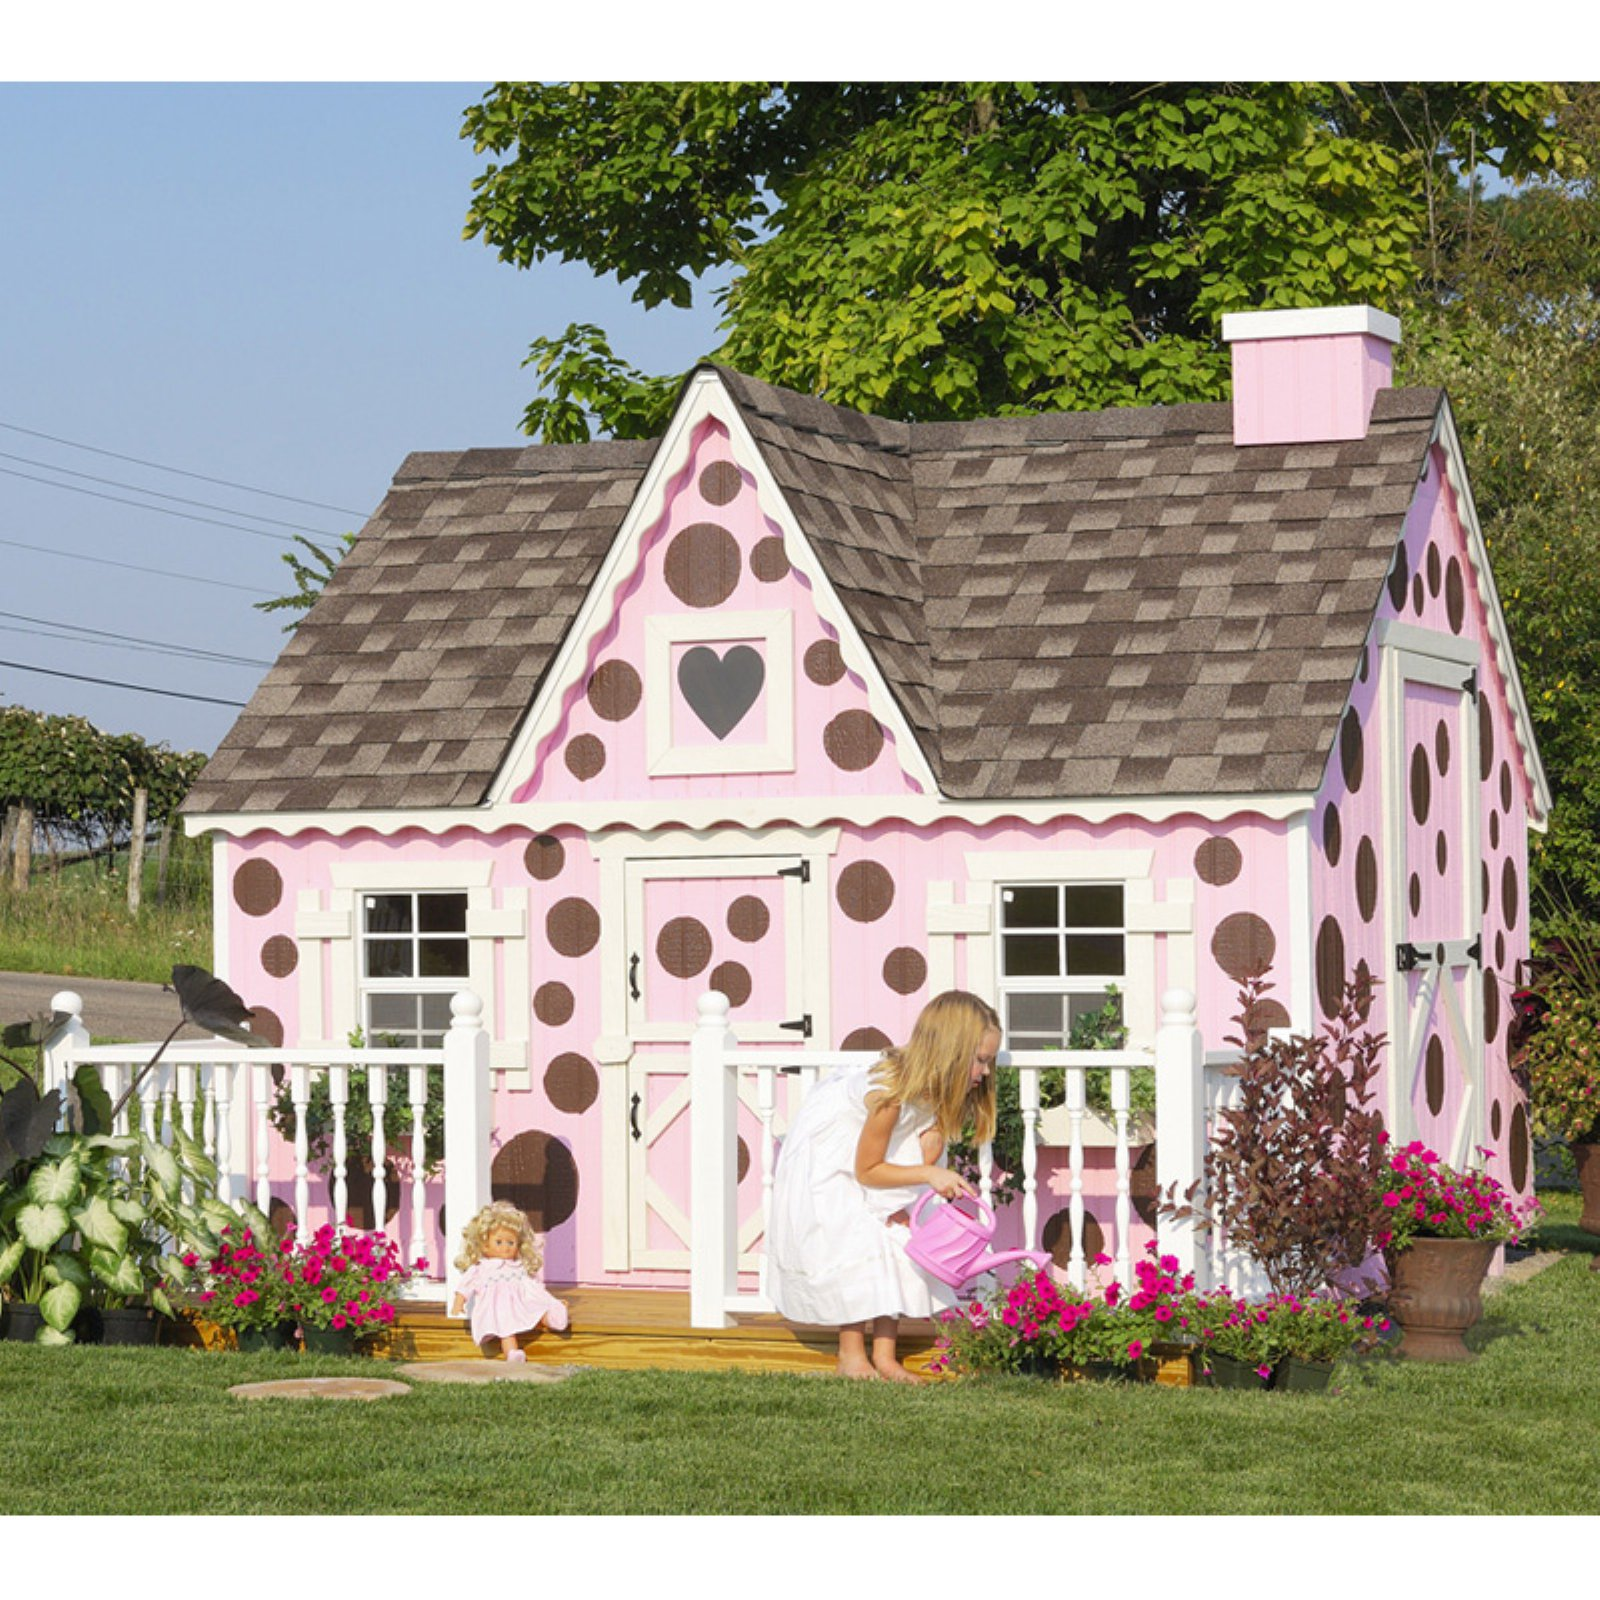 Little Cottage Victorian 8 x 10 ft. Wood Playhouse by Little Cottage Co